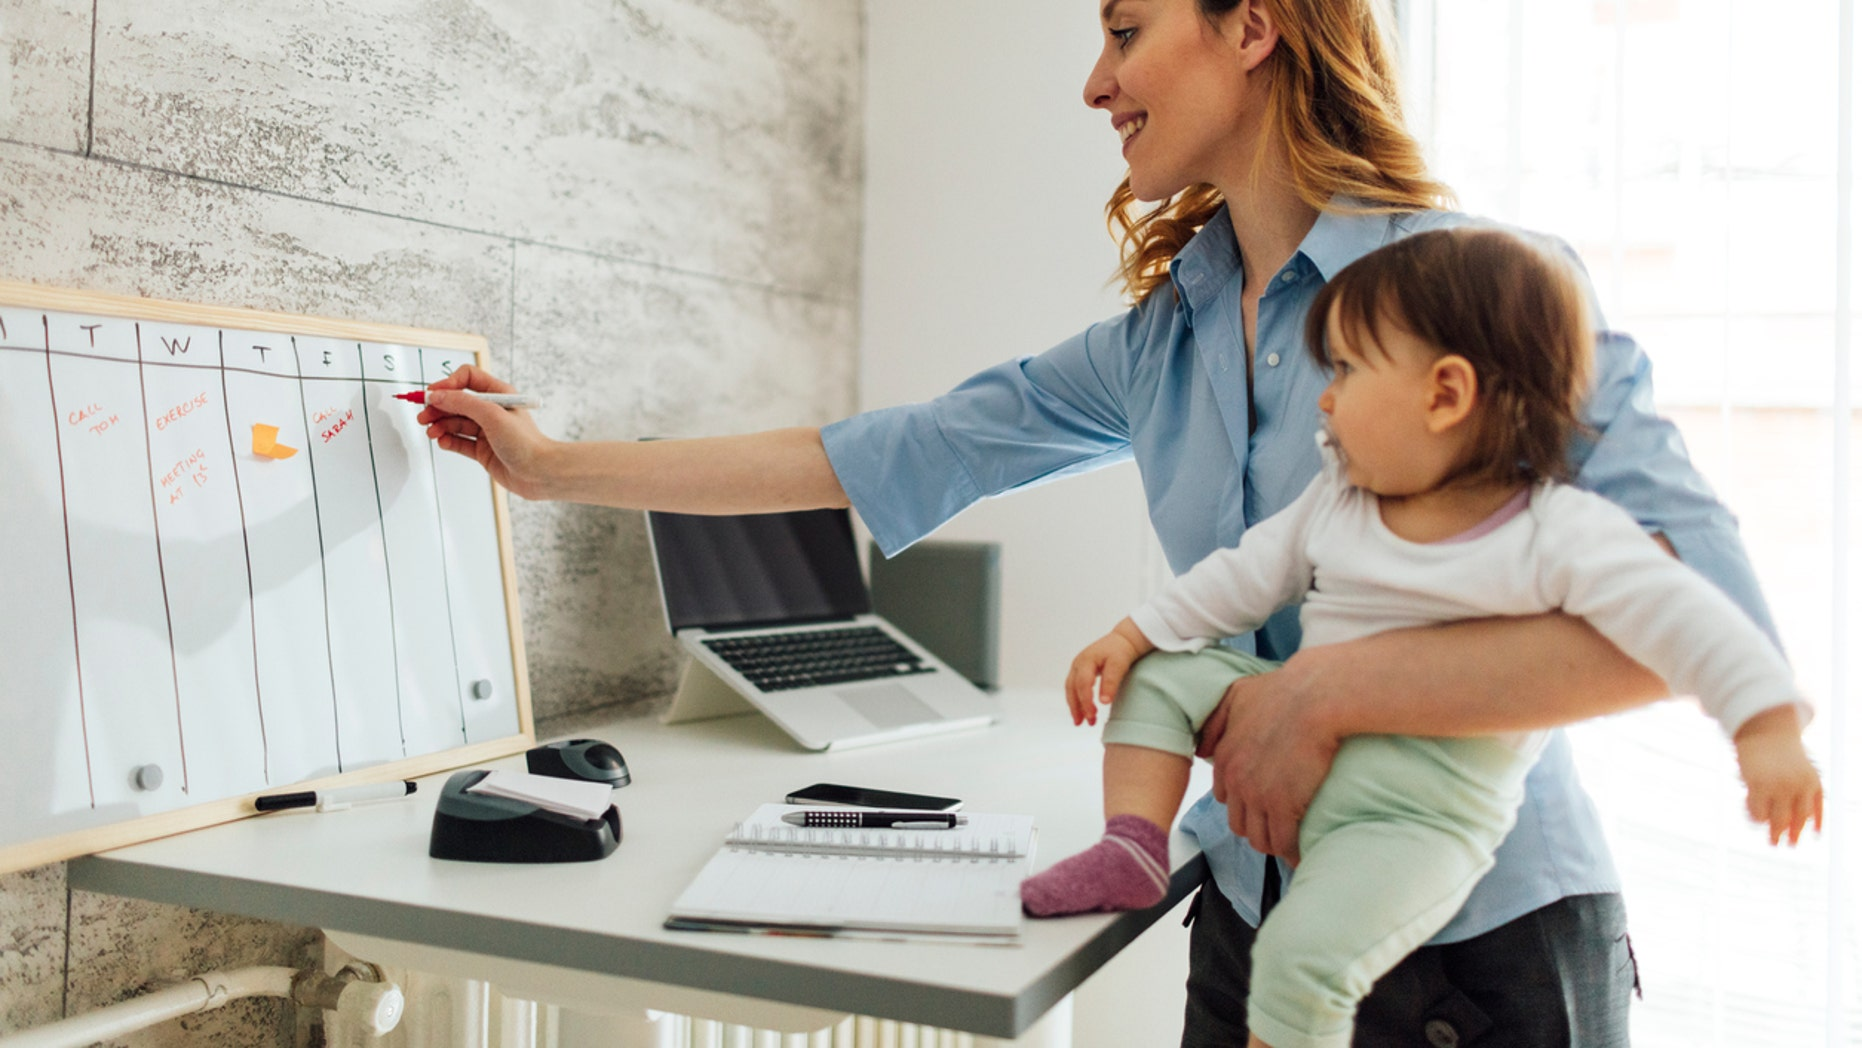 Mother working from home while carrying her cute baby girl. She is writing on whiteboard, entering into the schedule. She is happy and cheerful.